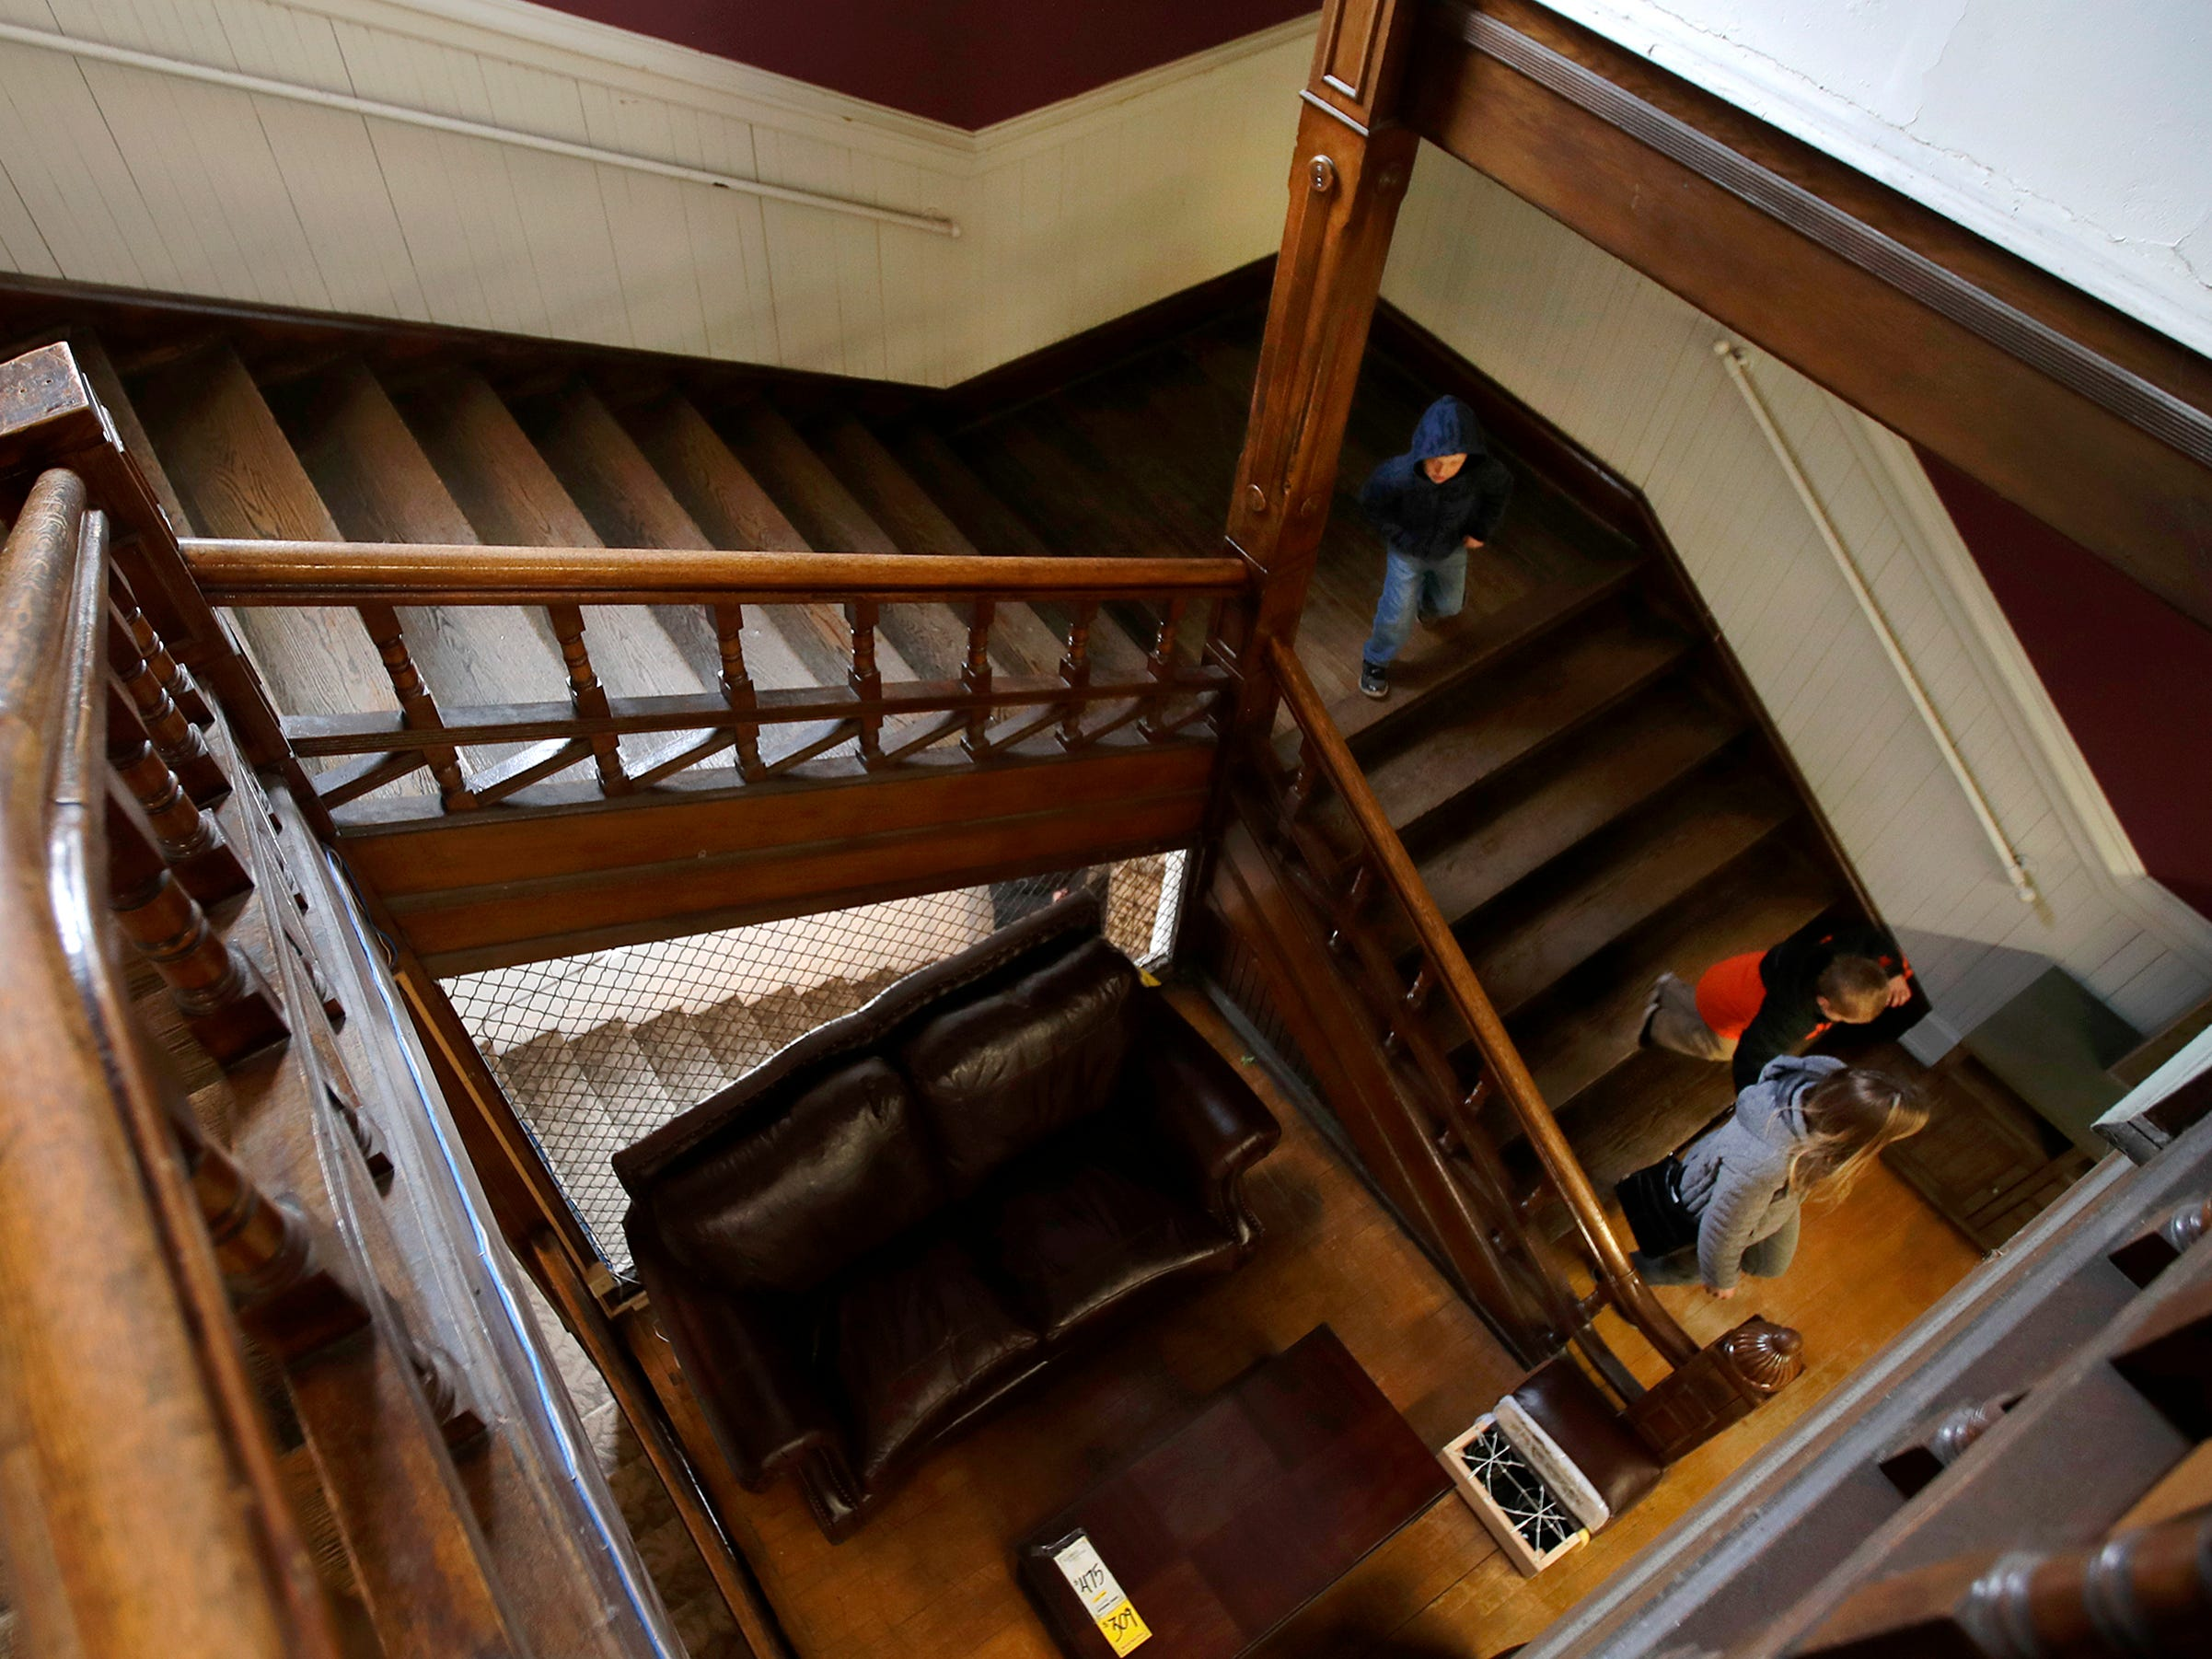 Kayla Hendricks, of Appleton, walks down the grand staircase in Gabriel Furniture with her sons Charlie, 5, and Bennett, 3, while looking around the building Thursday, April 18, 2019, in Appleton, Wis. Hendricks used to visit the building, which was built in 1888, as a child. The staircase is original to the building.